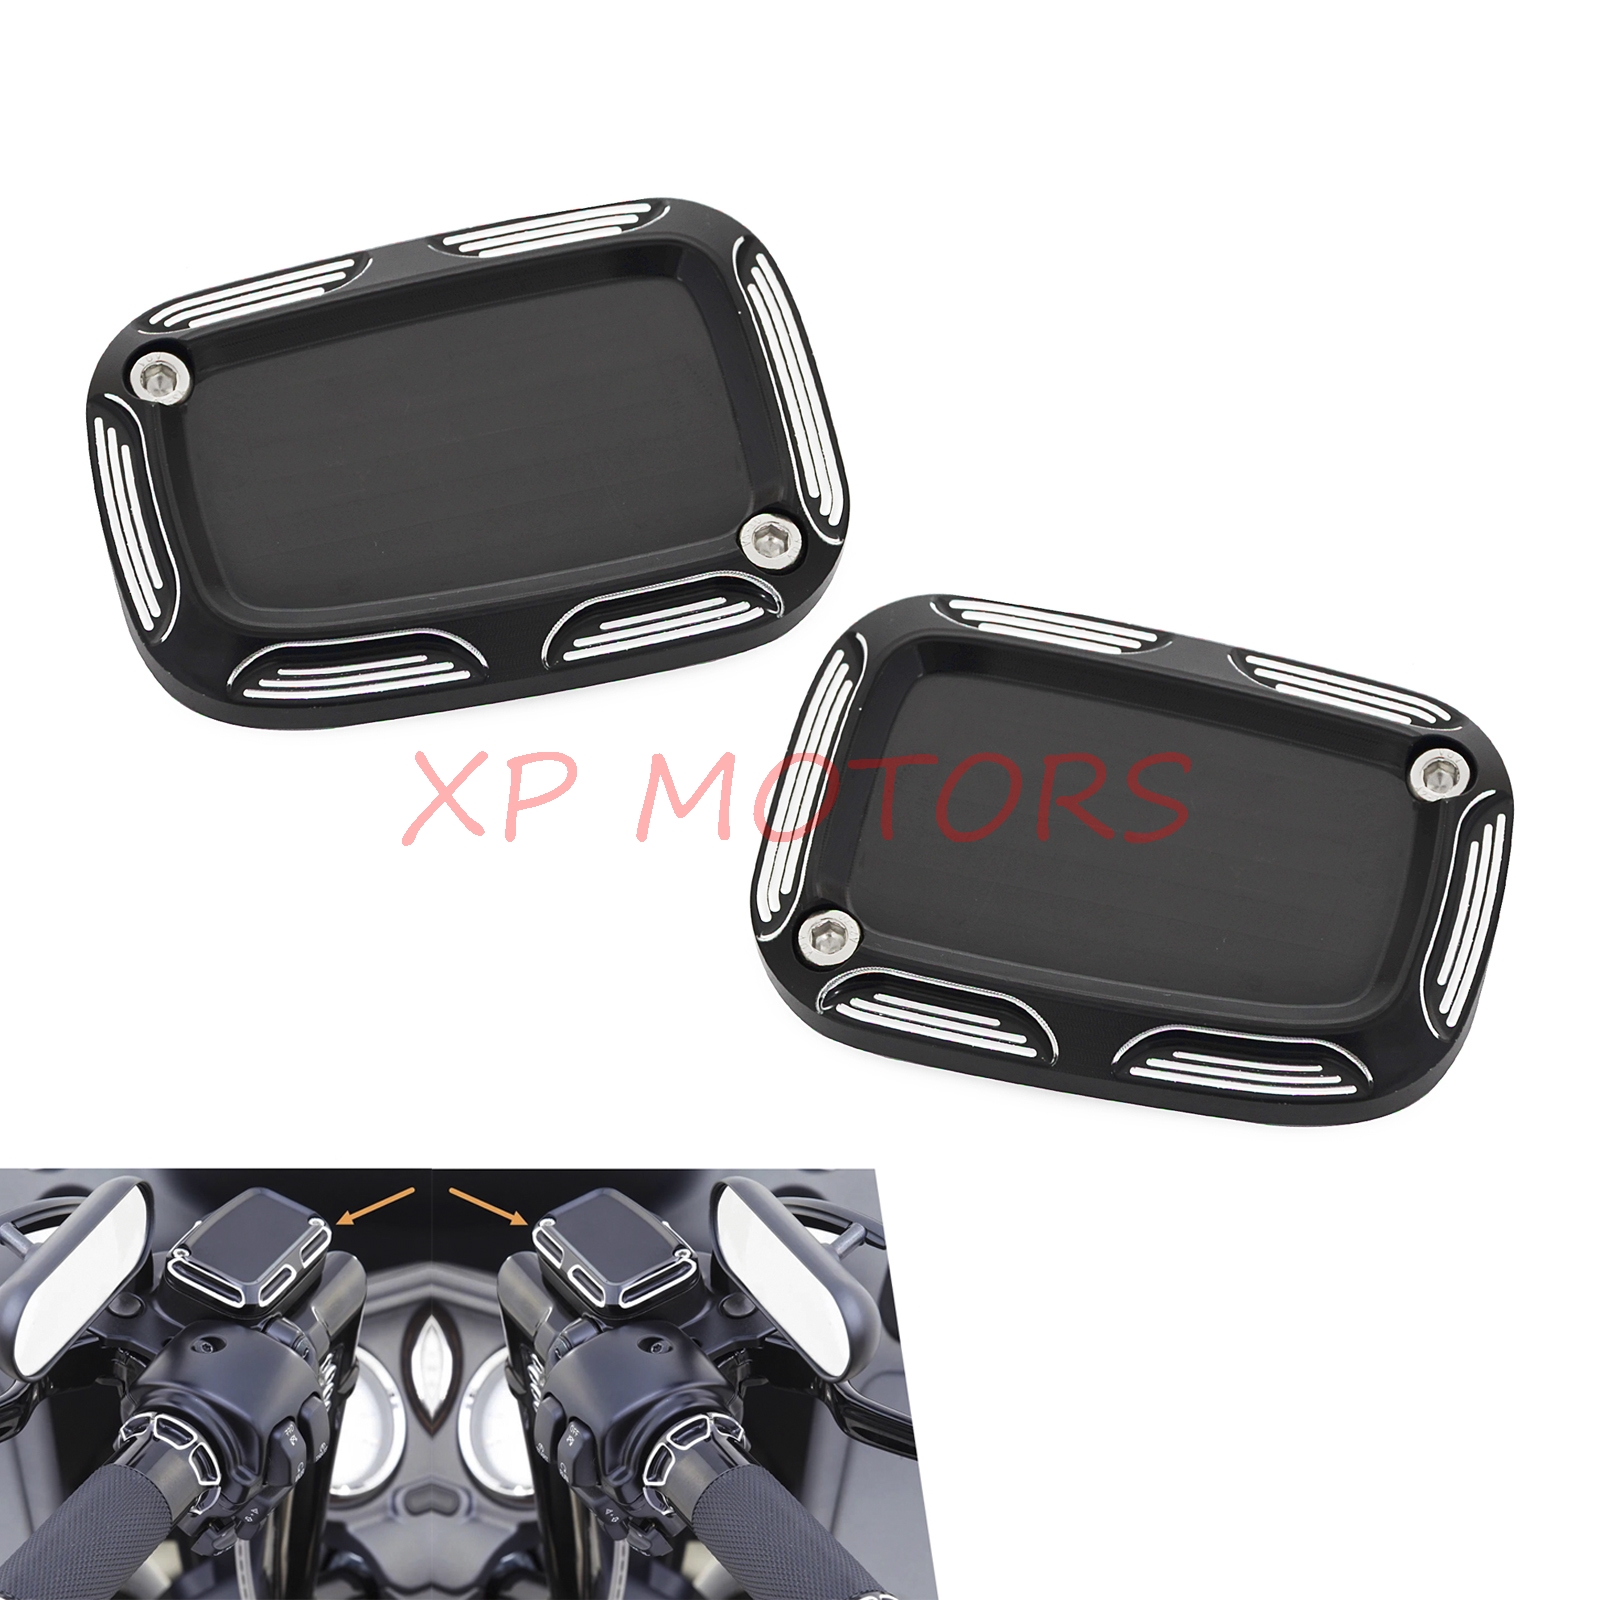 Left&Right Clutch Master Cylinder Cover For 06-later VRSC 14-16 Touring Models&Some Harley Models Equipped With Hydraulic Clutch viborg audio fp 3ts20 power cable schuko power plug figure 8 iec connector power cable